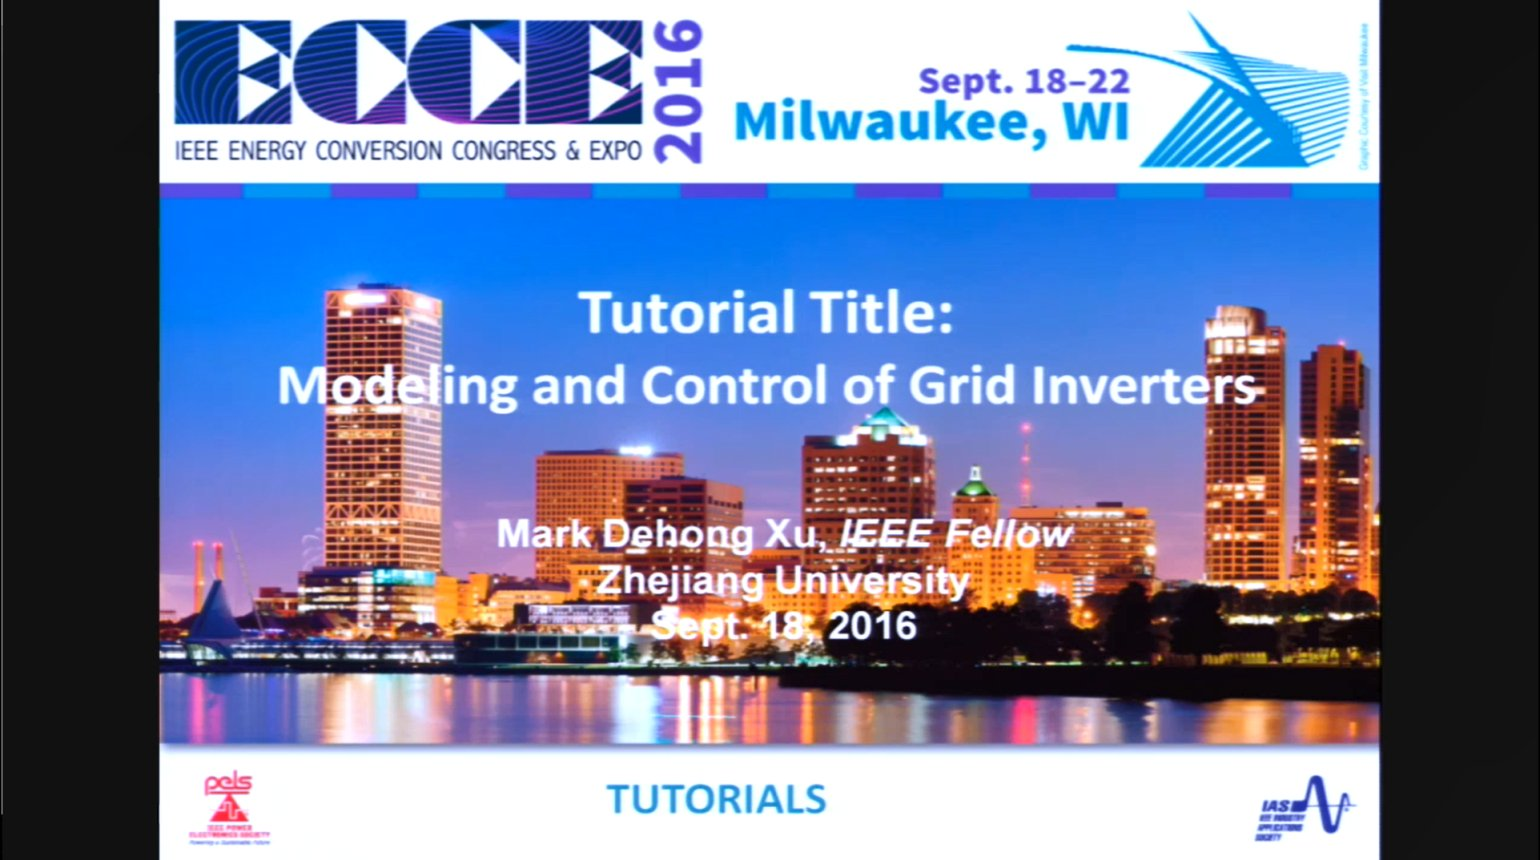 Modeling and Control of Grid Inverters